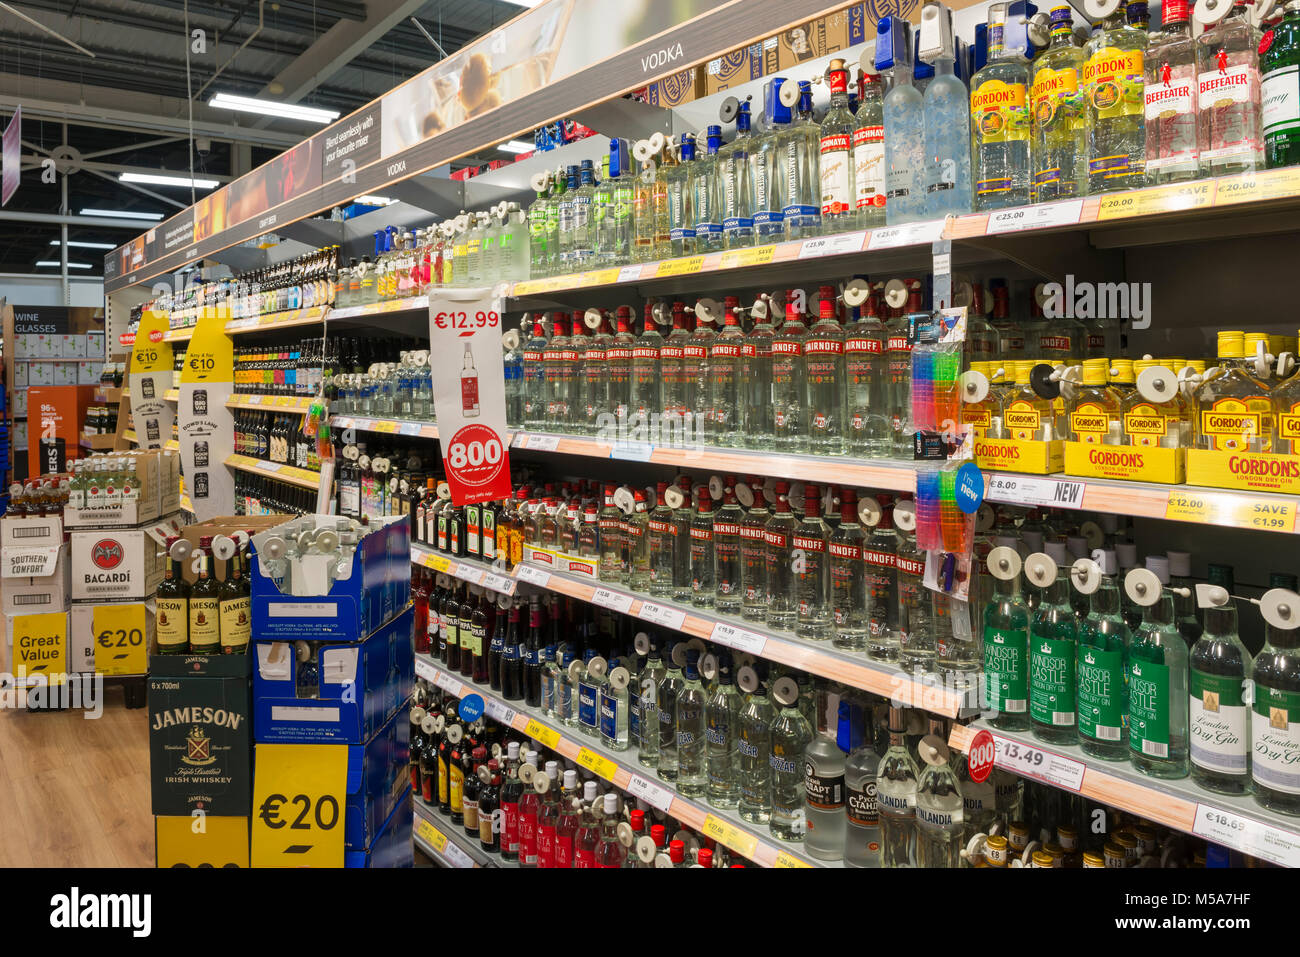 Alcohol spirits bottles on sale on a supermarket shelf, Ireland - Stock Image